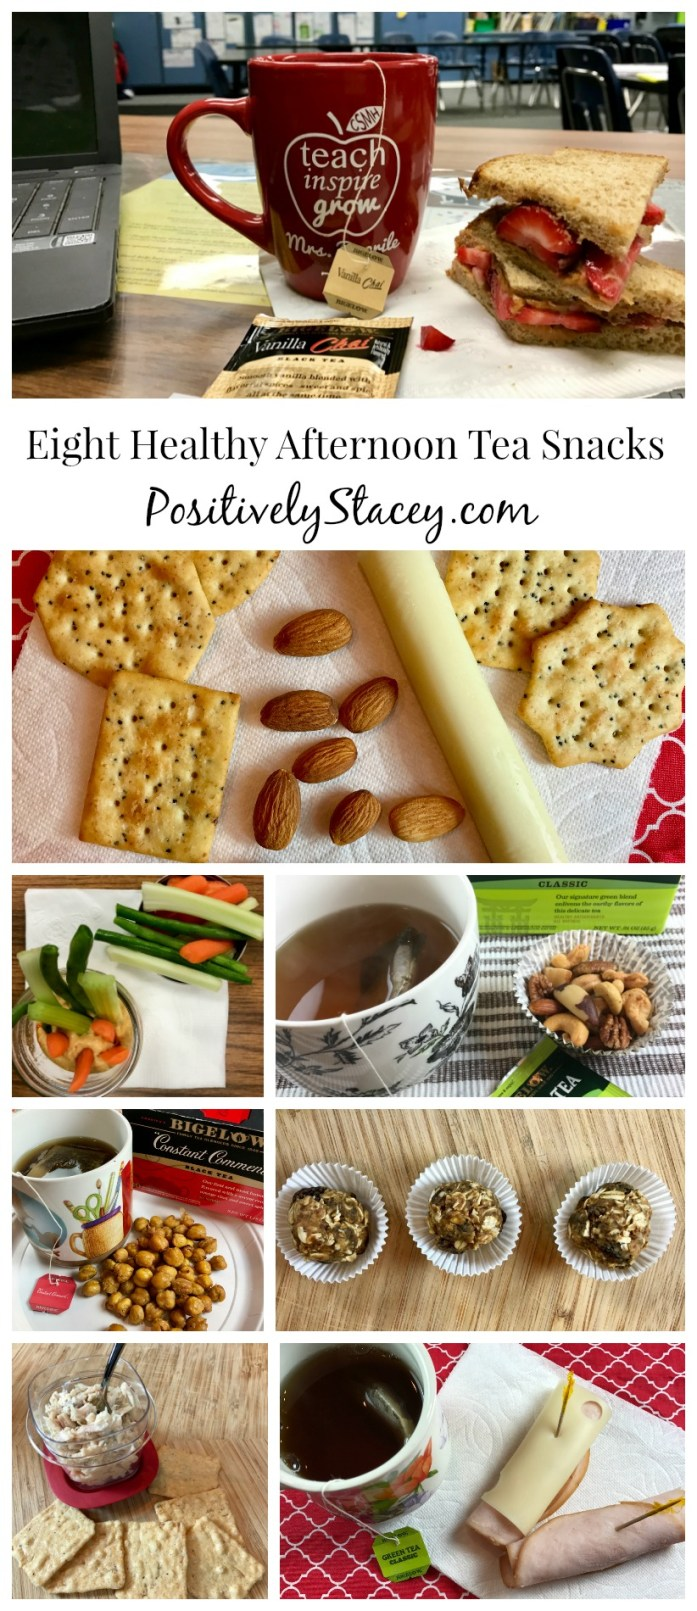 Eight Healthy Afternoon Tea Snacks